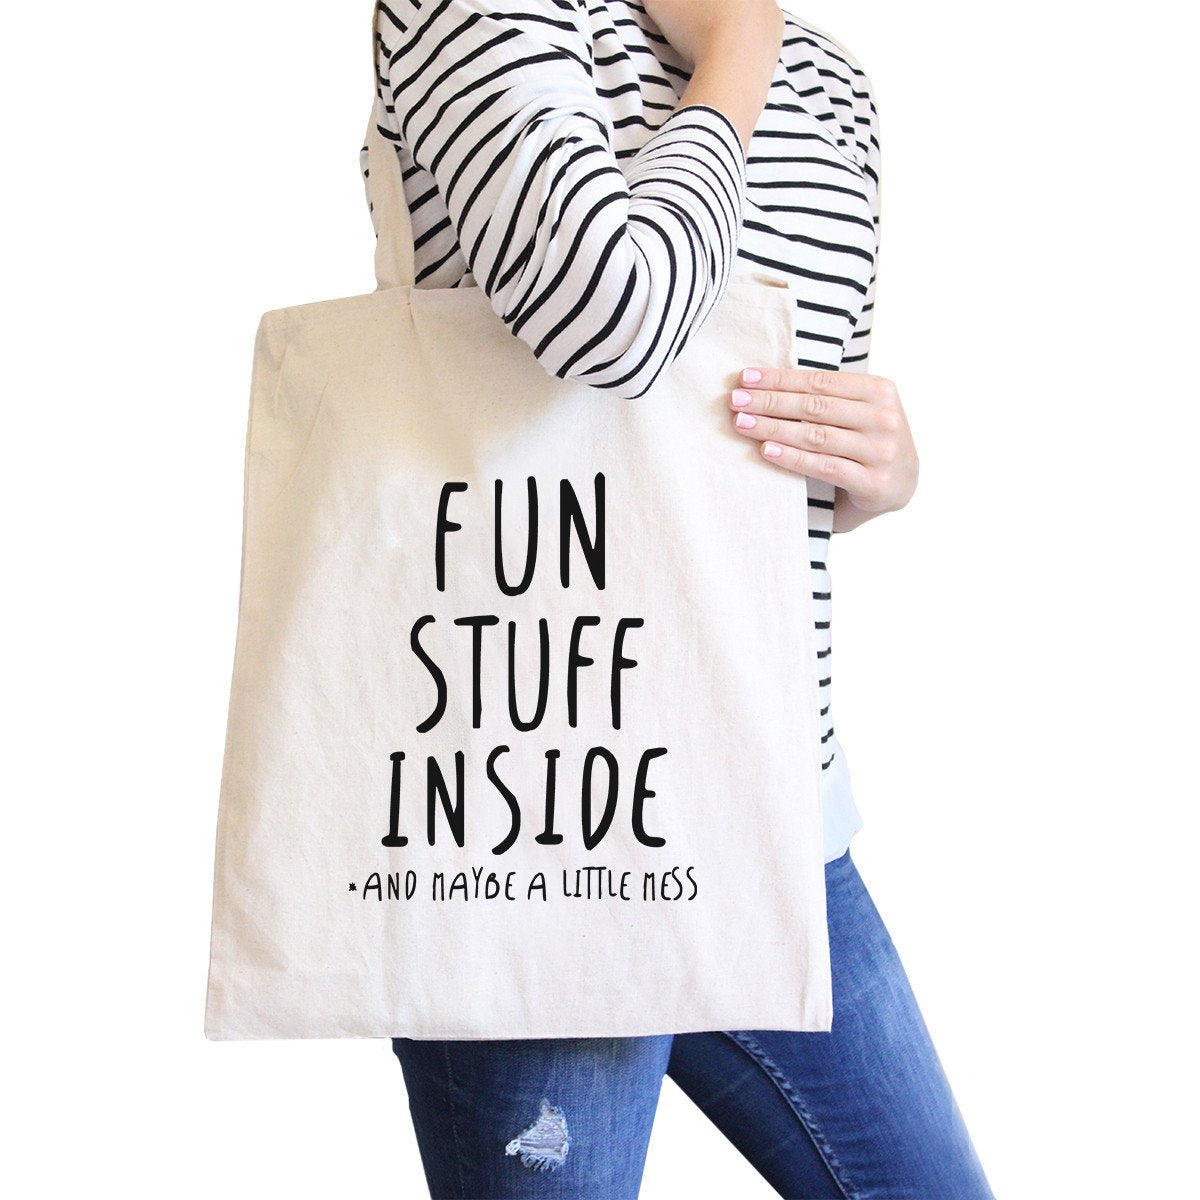 Fun Stuff Inside Natural Canvas Bag Book Bags Gifts For Teenagers